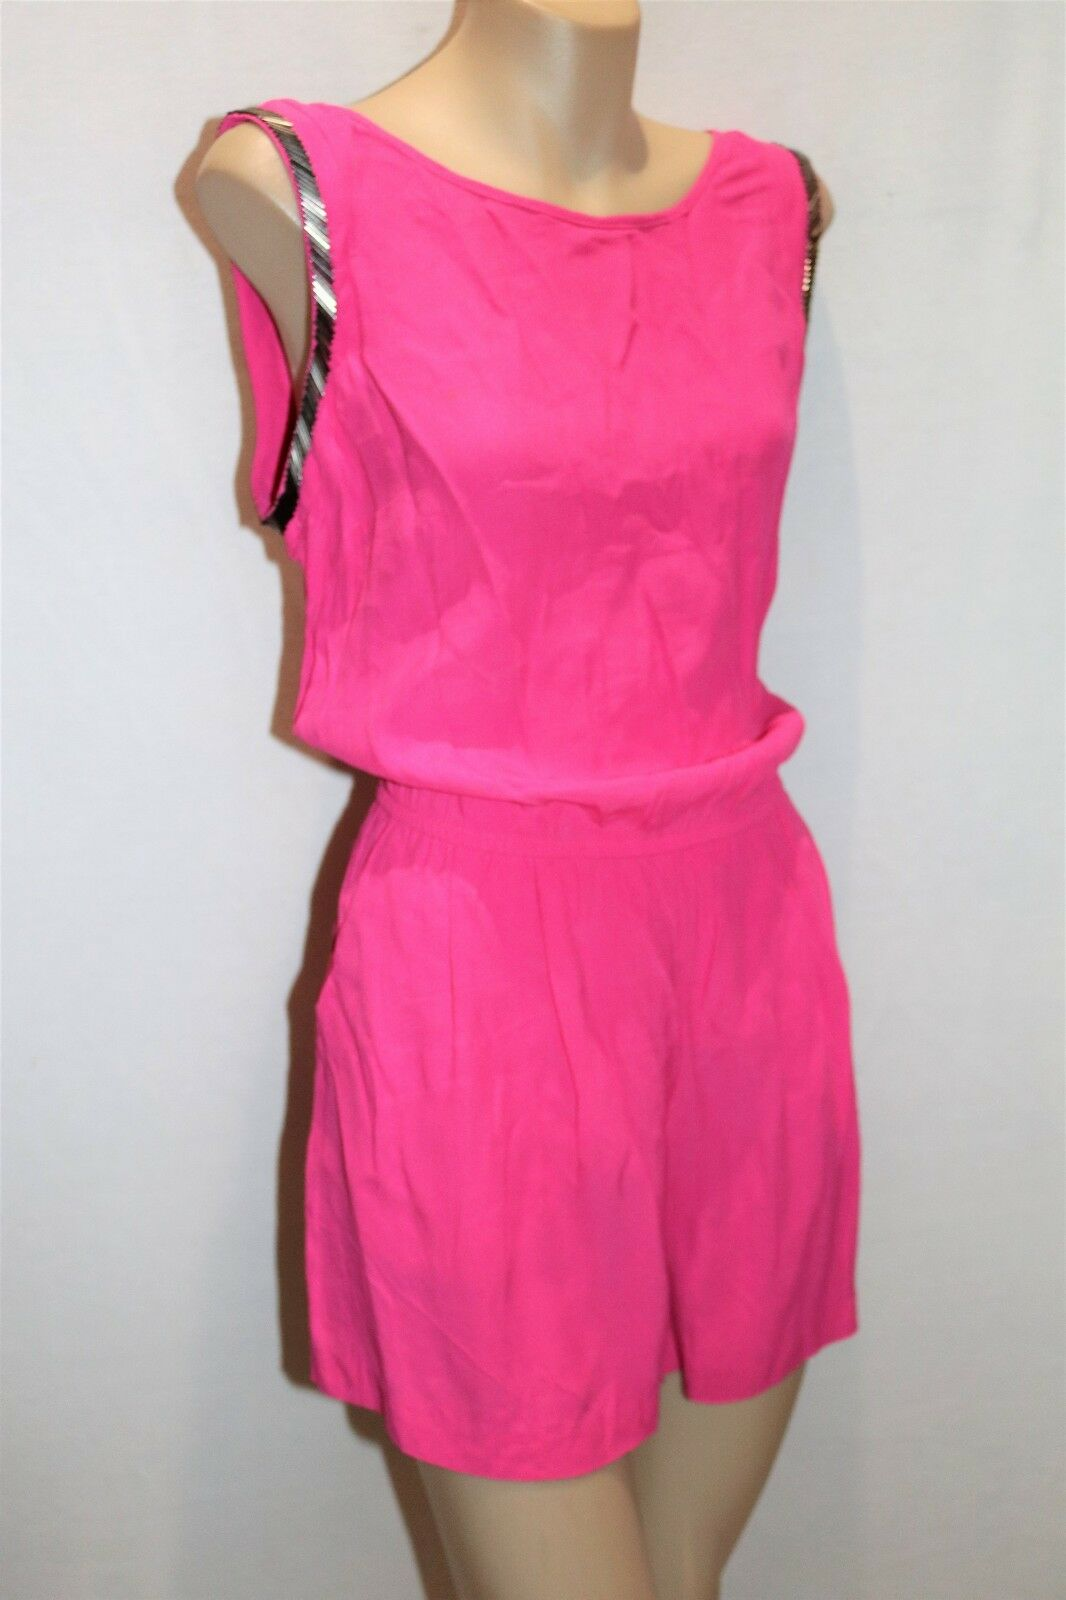 SEDUCE Brand Pink Rumba Sleeveless Playsuit Size 10 BNWT  TL45